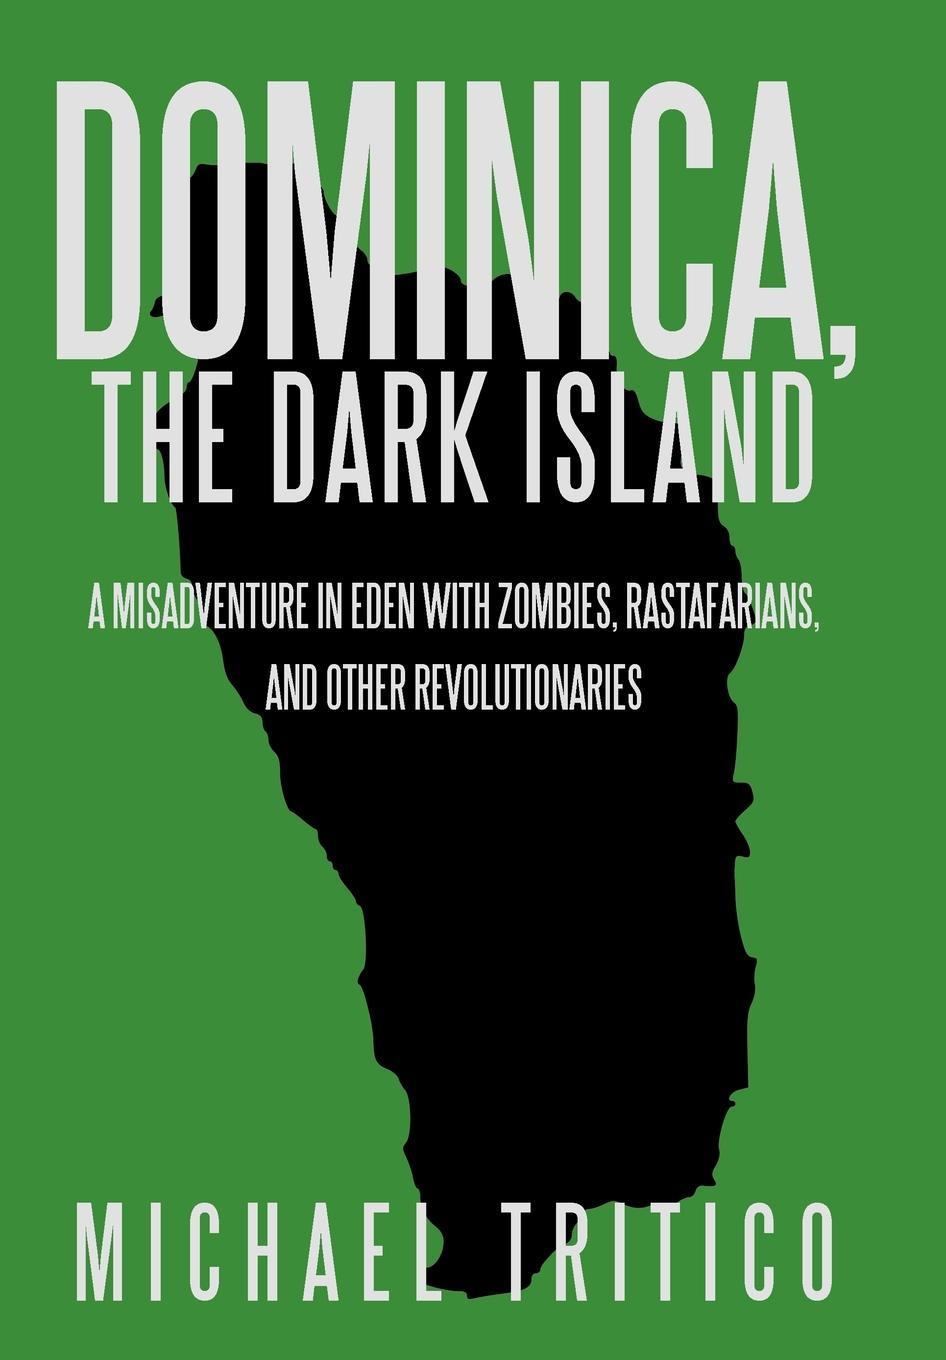 Dominica, the Dark Island: A Misadventure in Eden with Zombies, Rastafarians, and Other Revolutionaries EB2370004377117